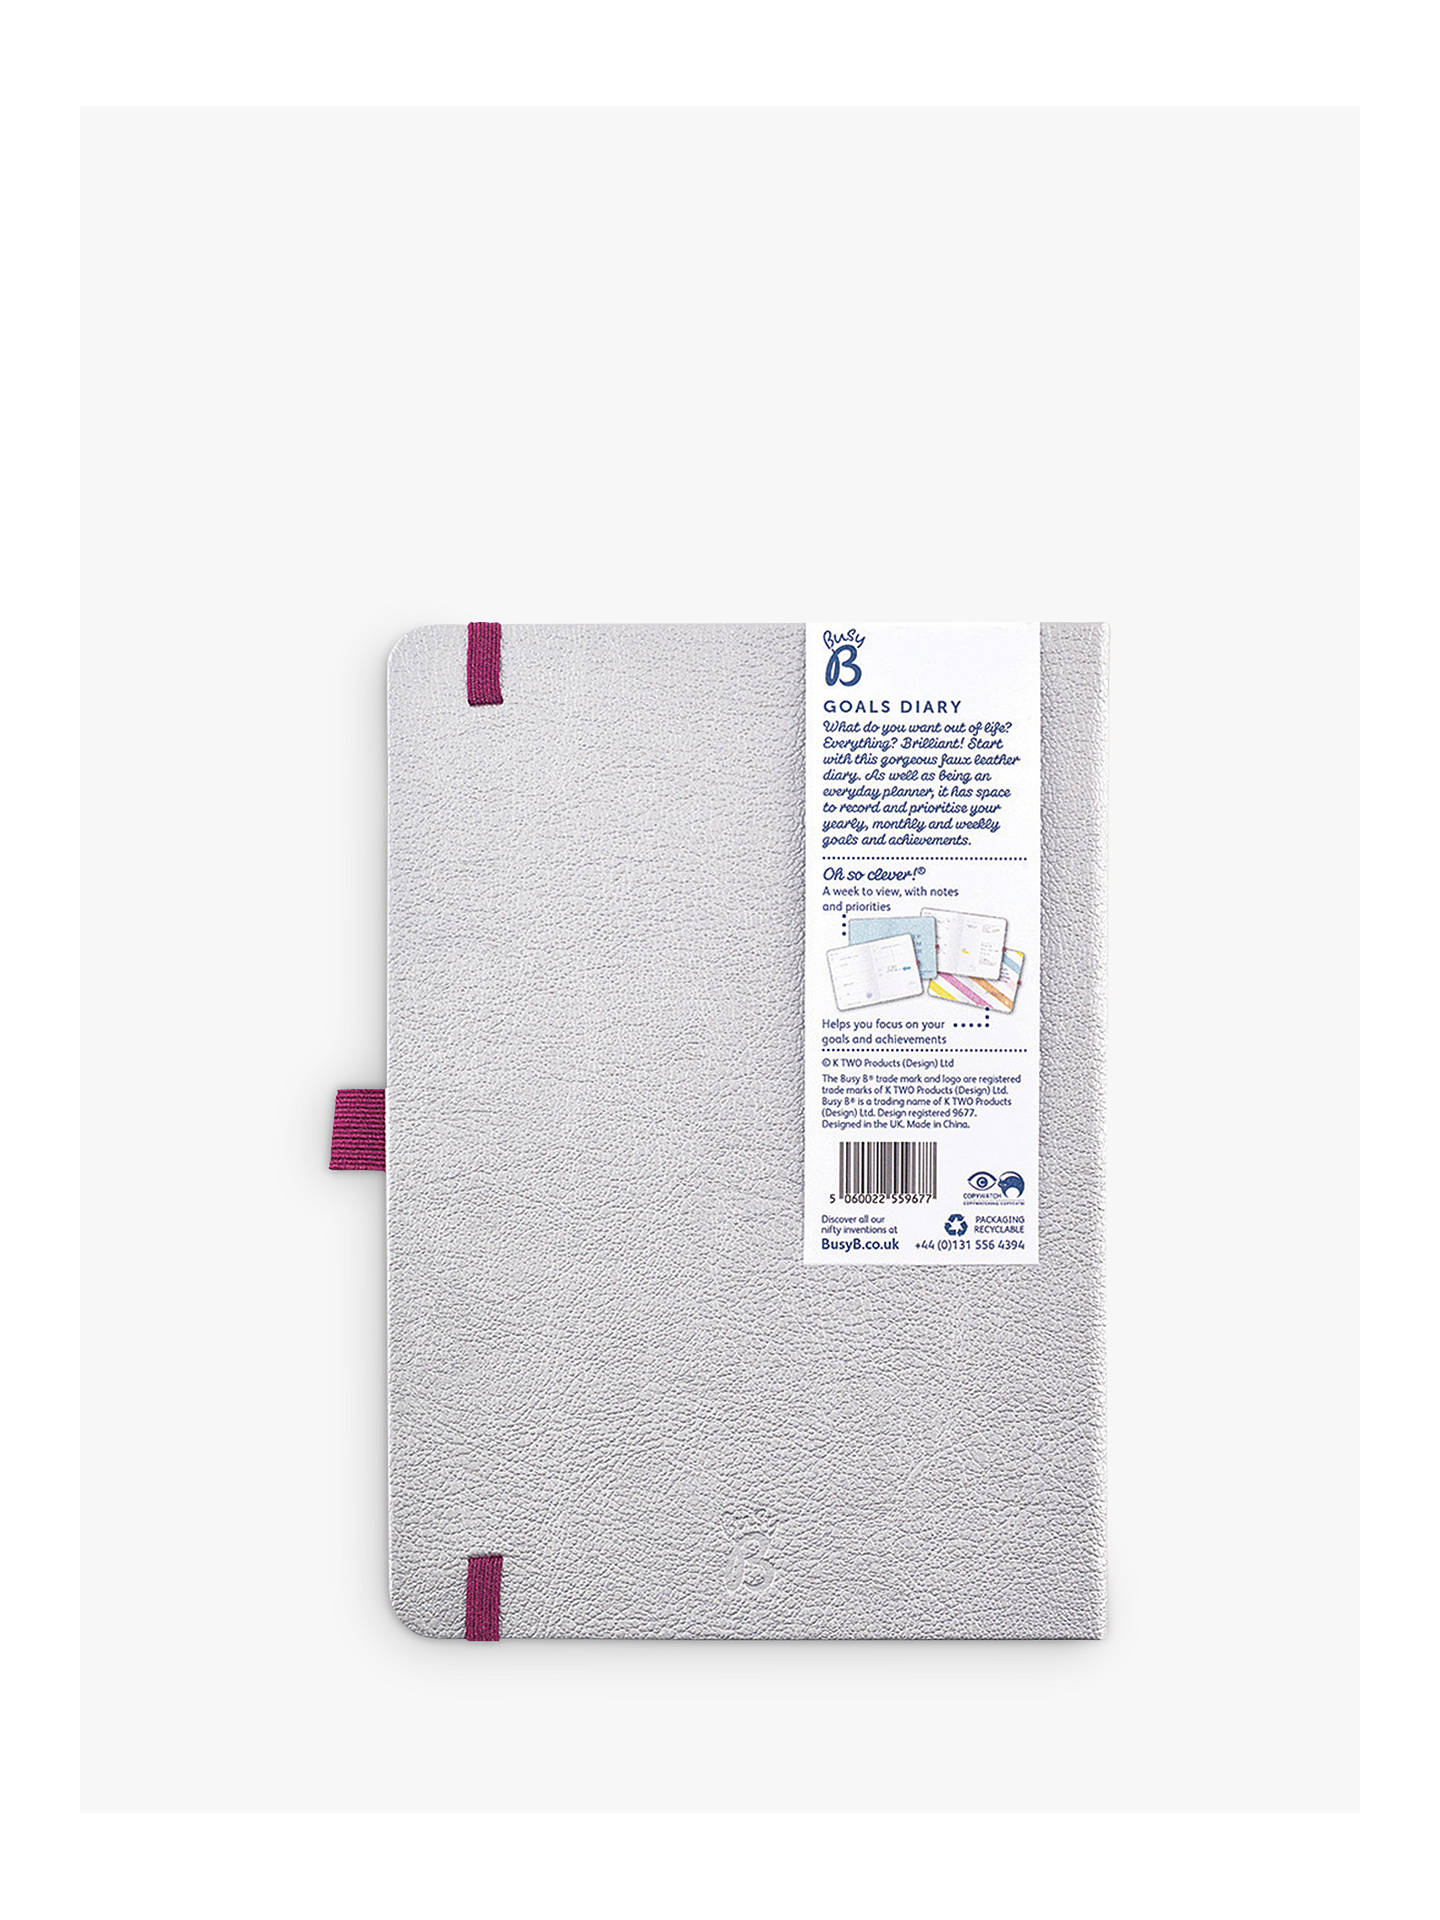 Buy Busy B Best Year Ever Goals Diary 2020 Online at johnlewis.com